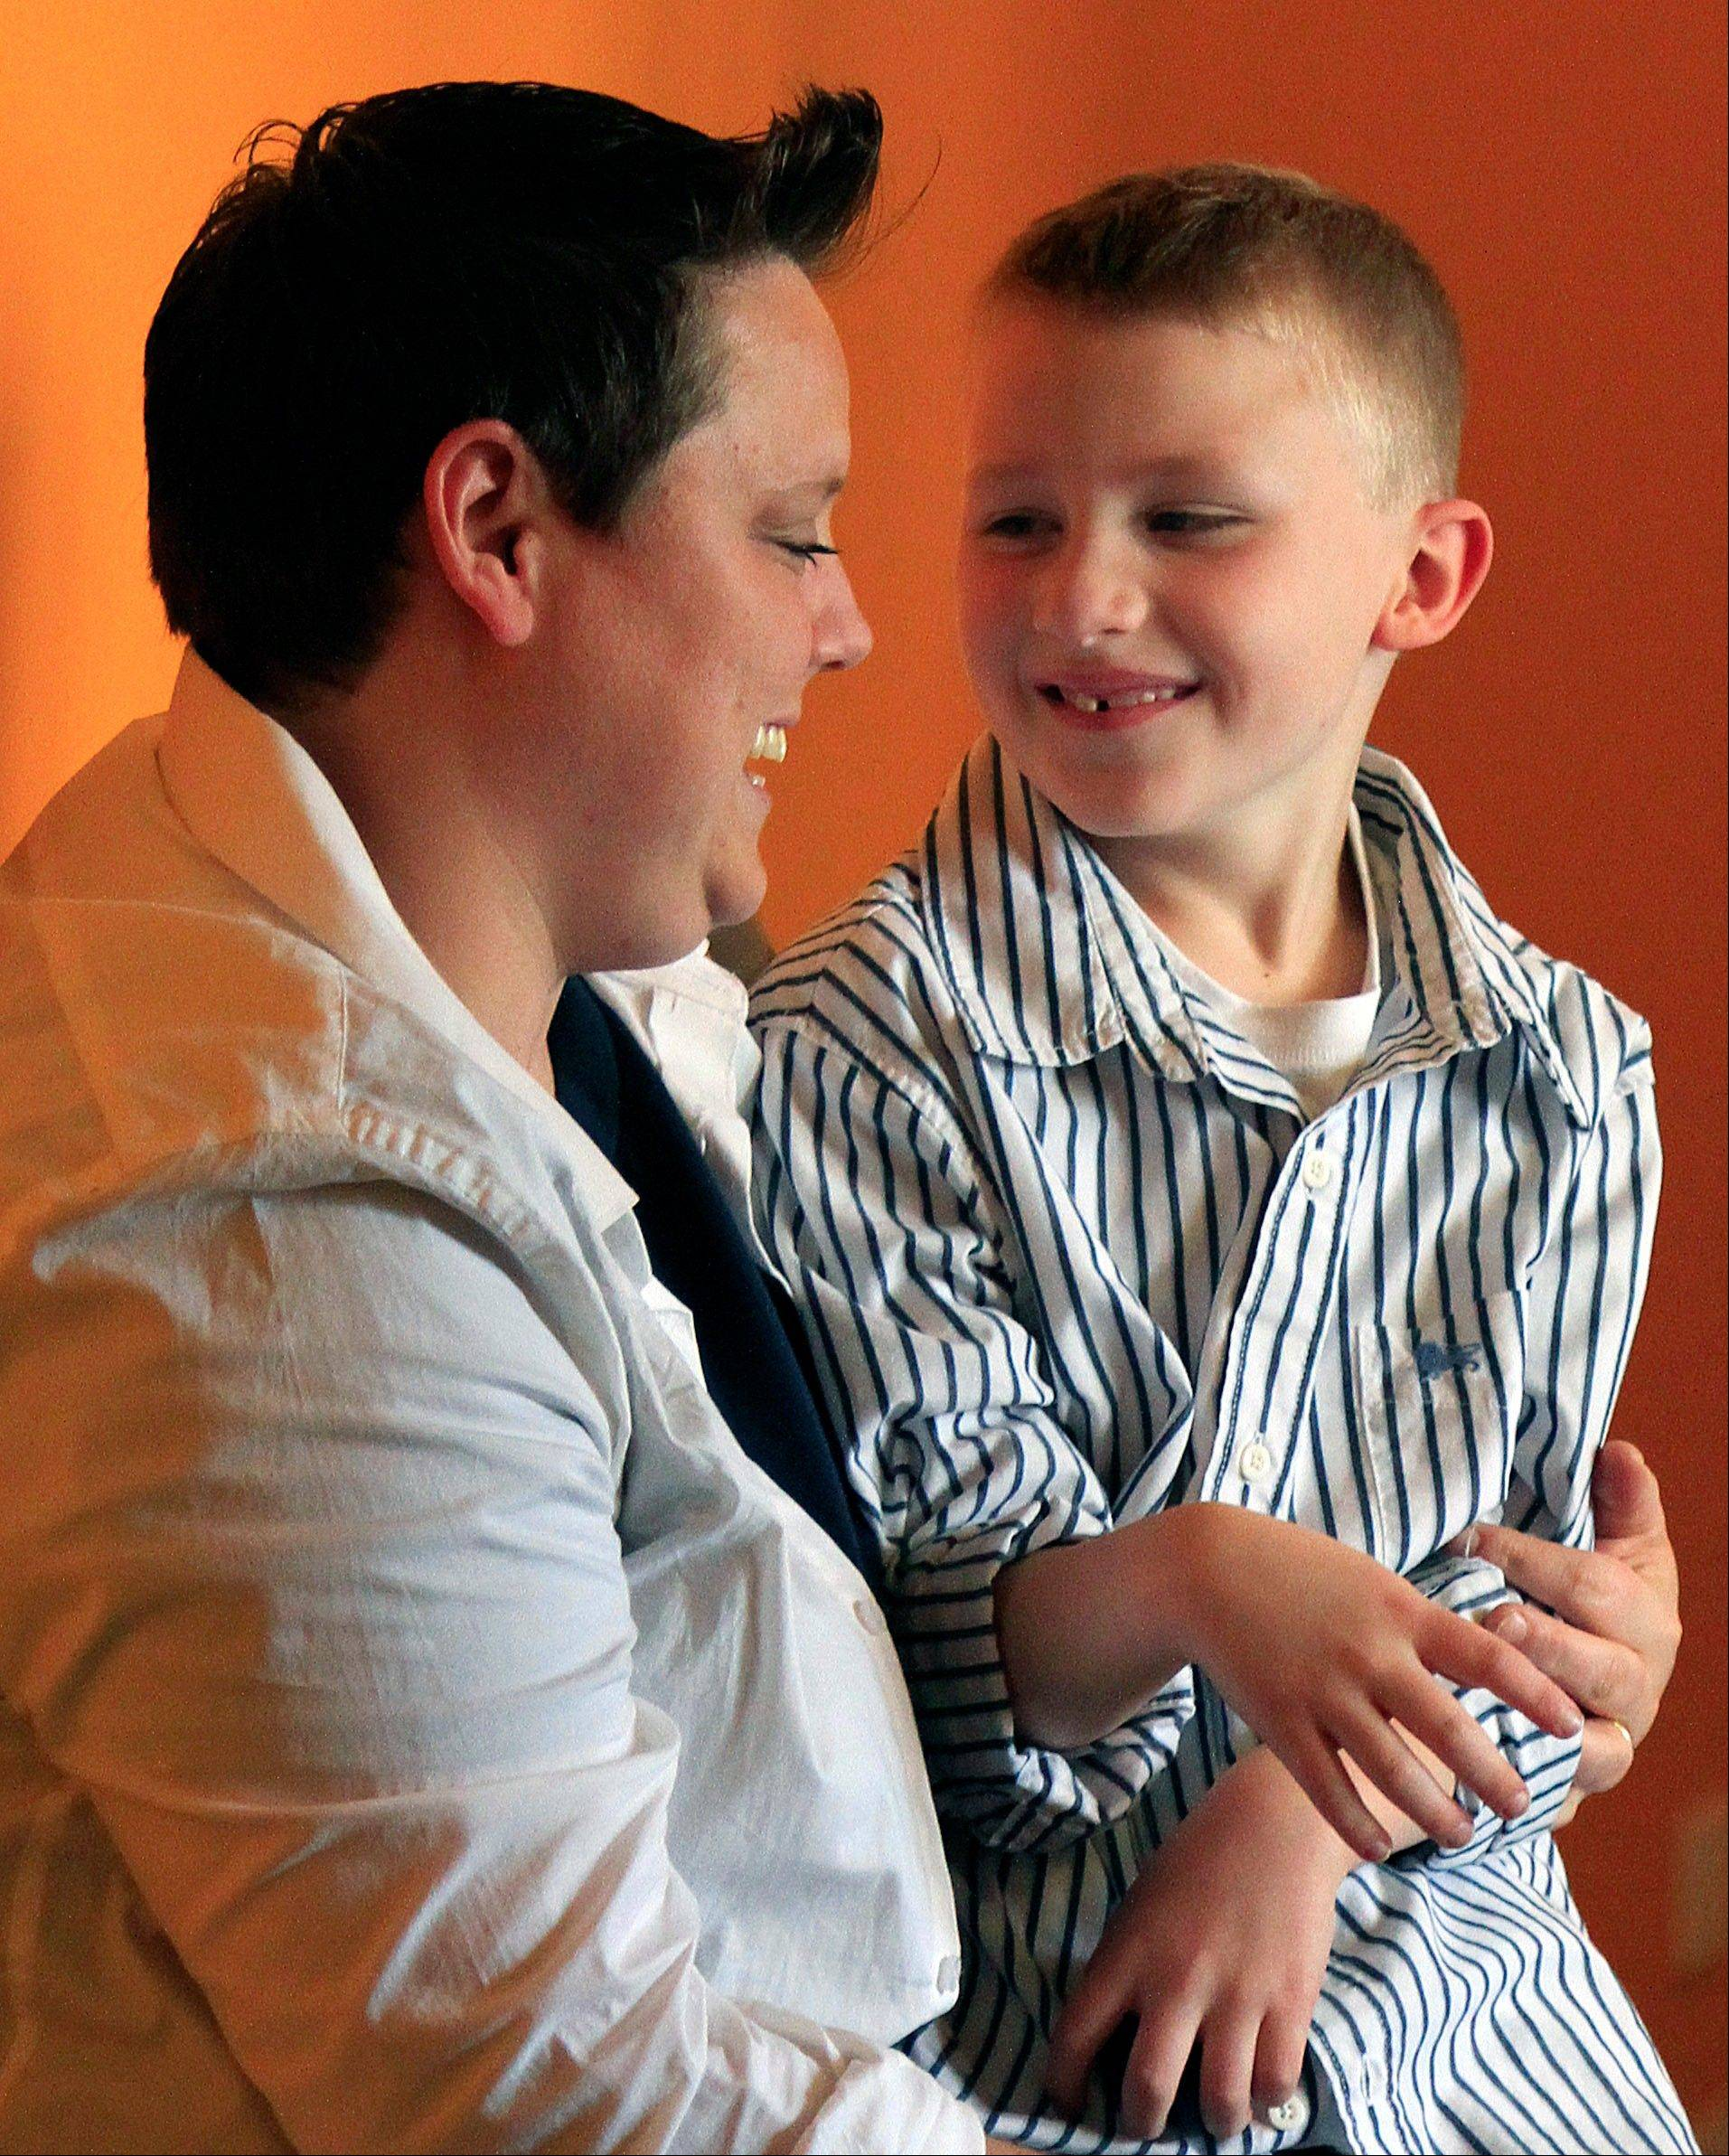 This Wednesday, April 25, 2012 photo shows Jennifer Tyrrell and her son Cruz Burns, 7, during a visit to New York. Tyrrell traveled to New York from her home in Bridgeport, Ohio, to build momentum for a petition to overturn what she says are Ohio Boy Scout's anti-gay policies, after she was removed as den leader for her son's Cub Scout troop.